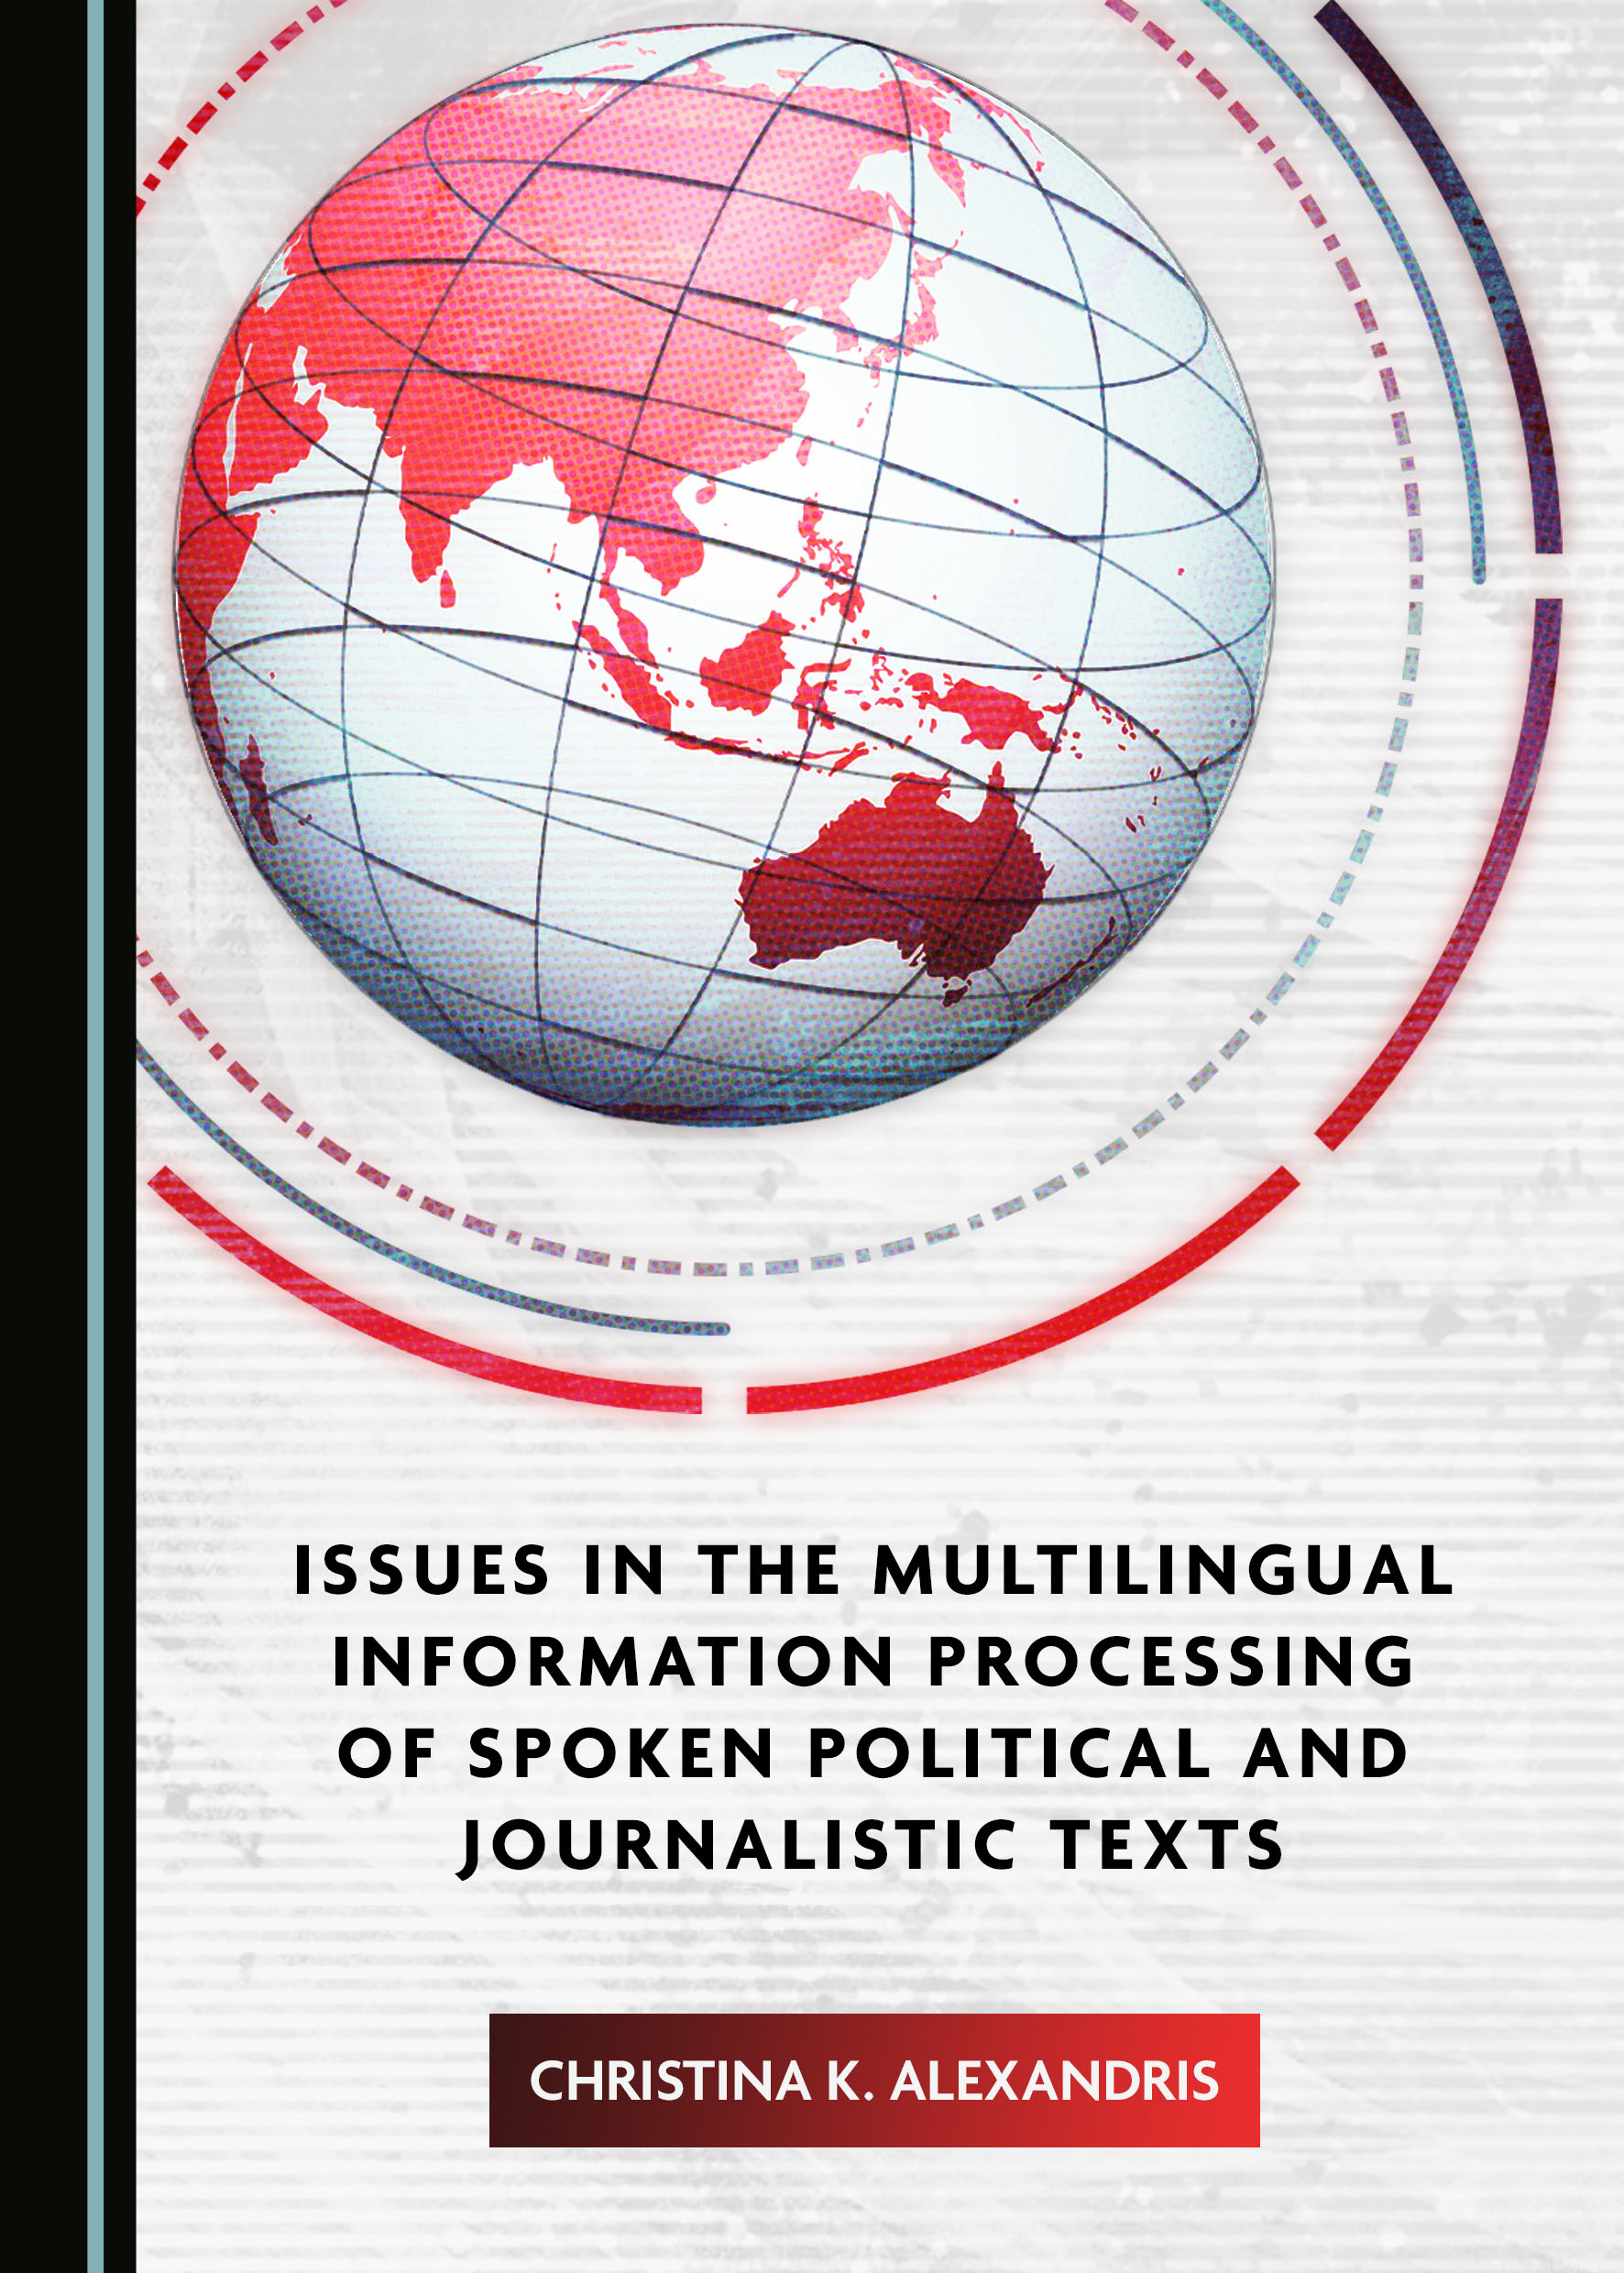 Issues in the Multilingual Information Processing of Spoken Political and Journalistic Texts